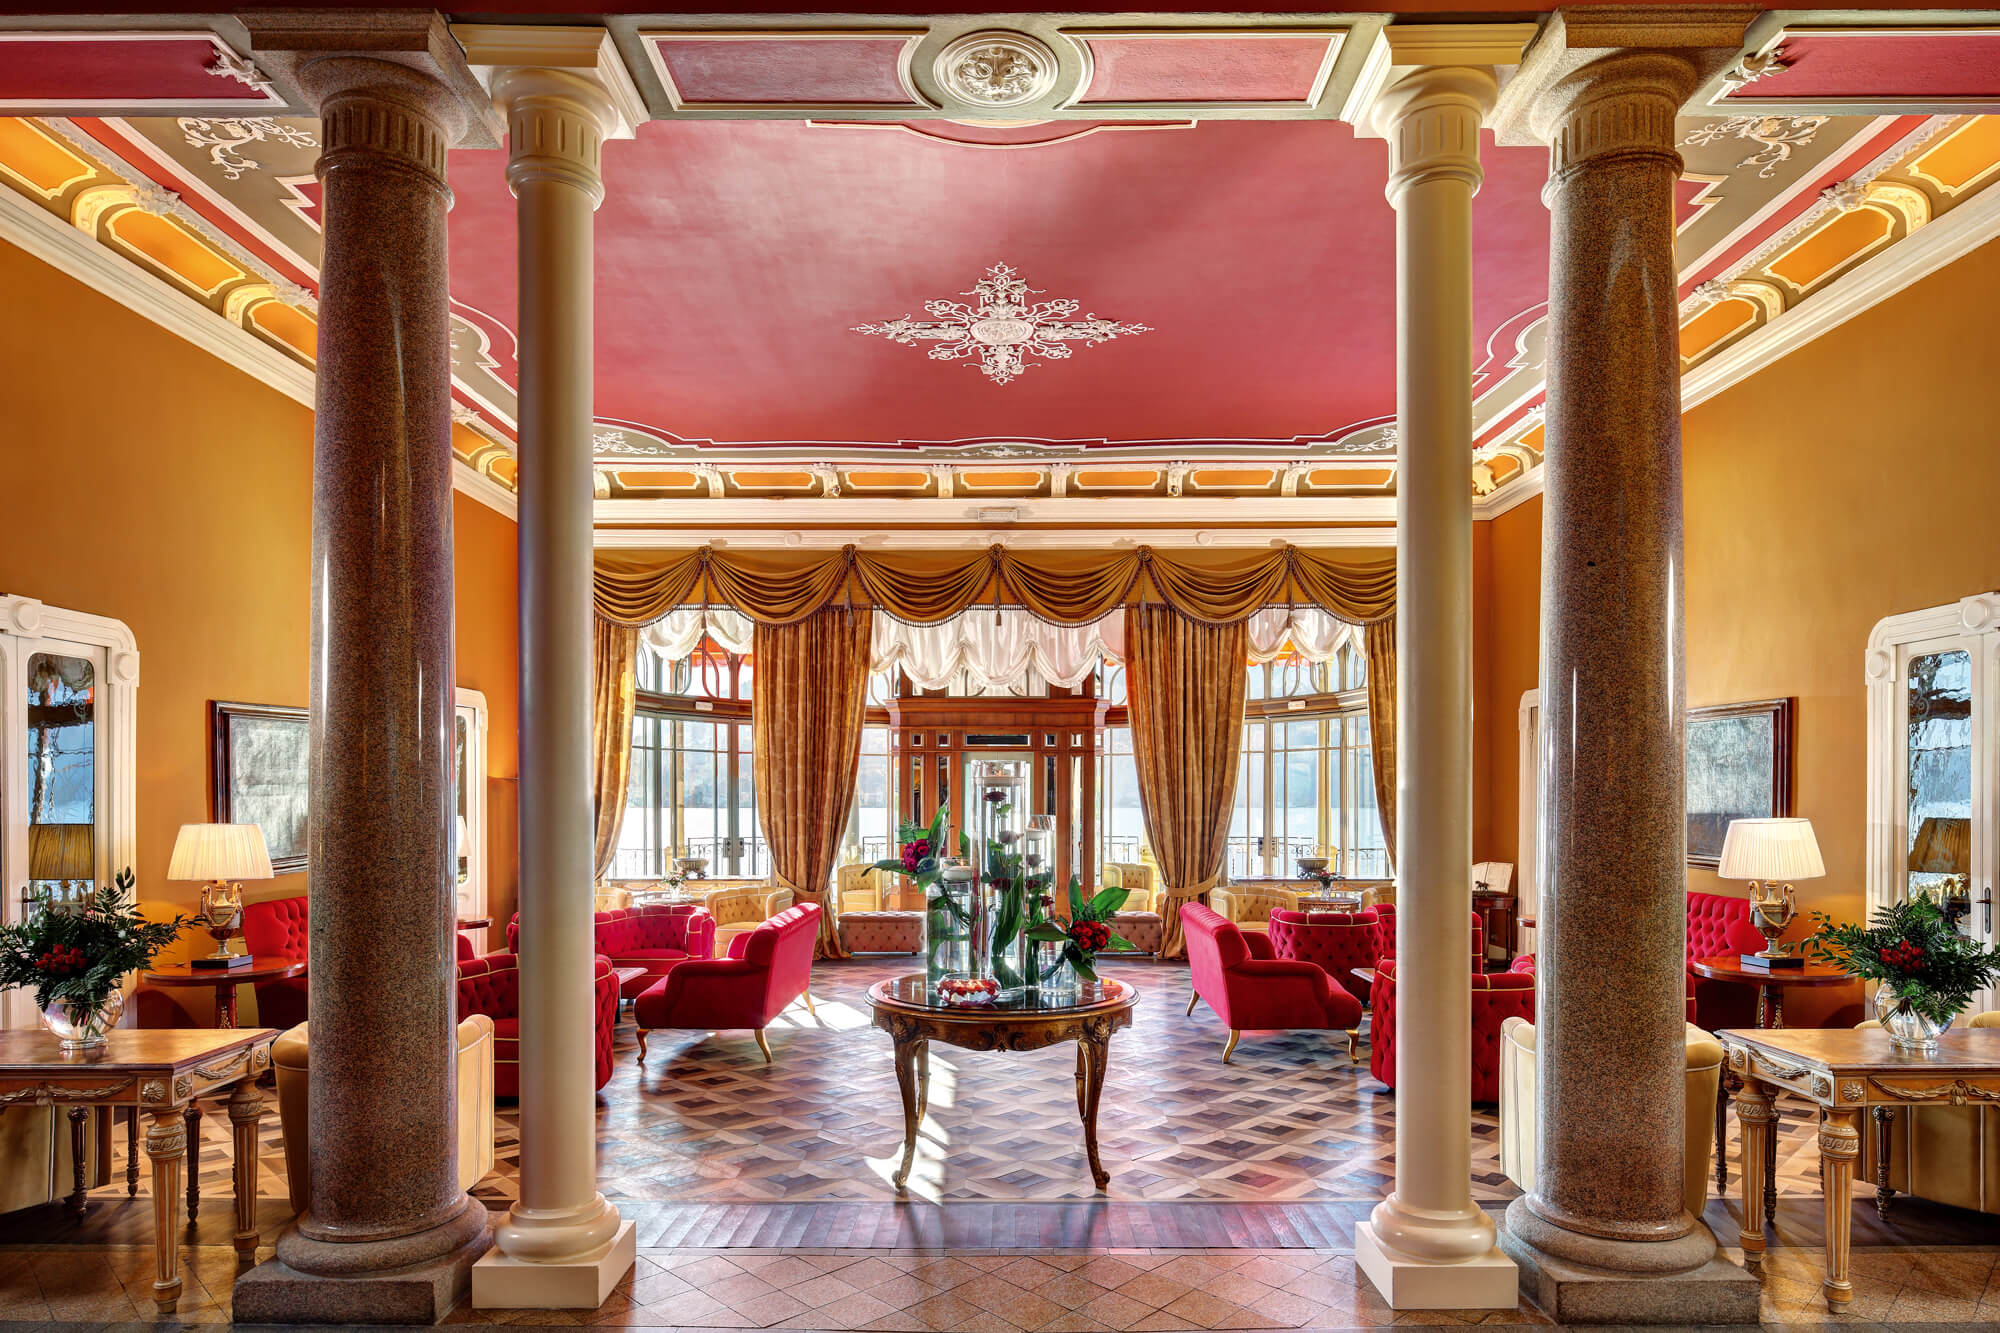 The magnificent lobby